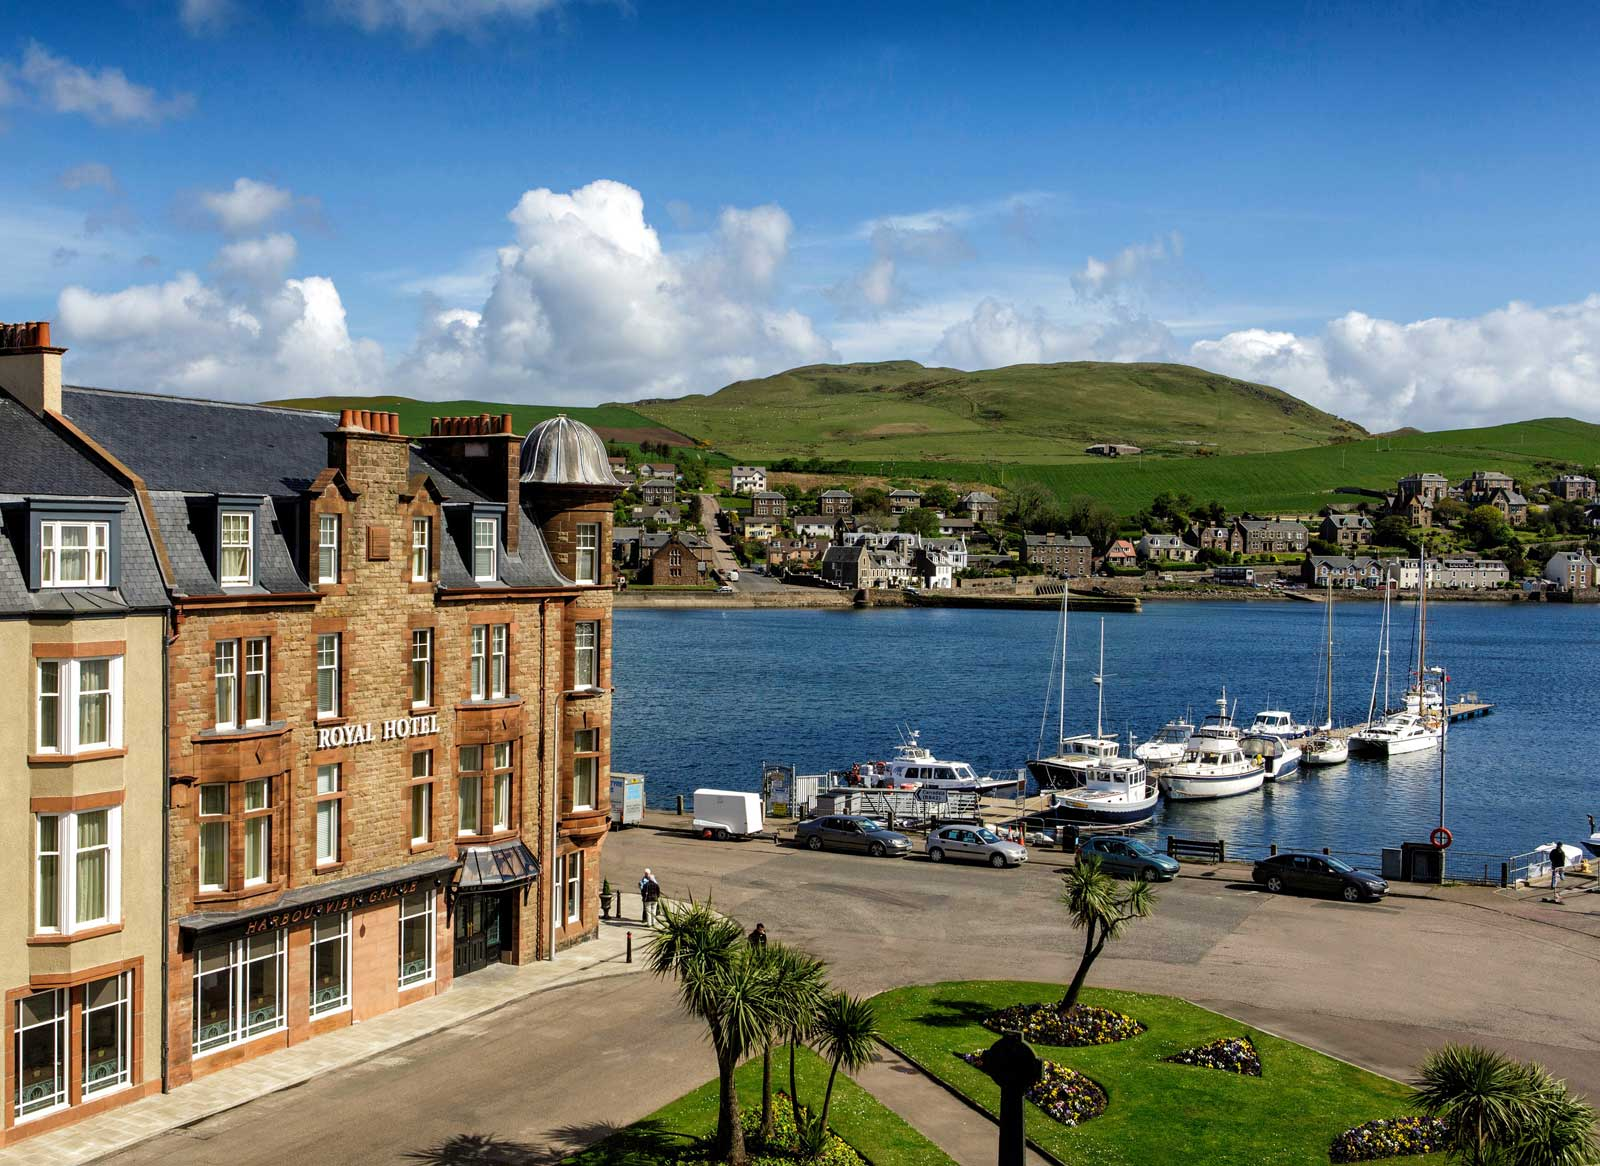 Royal Hotel, Campbeltown